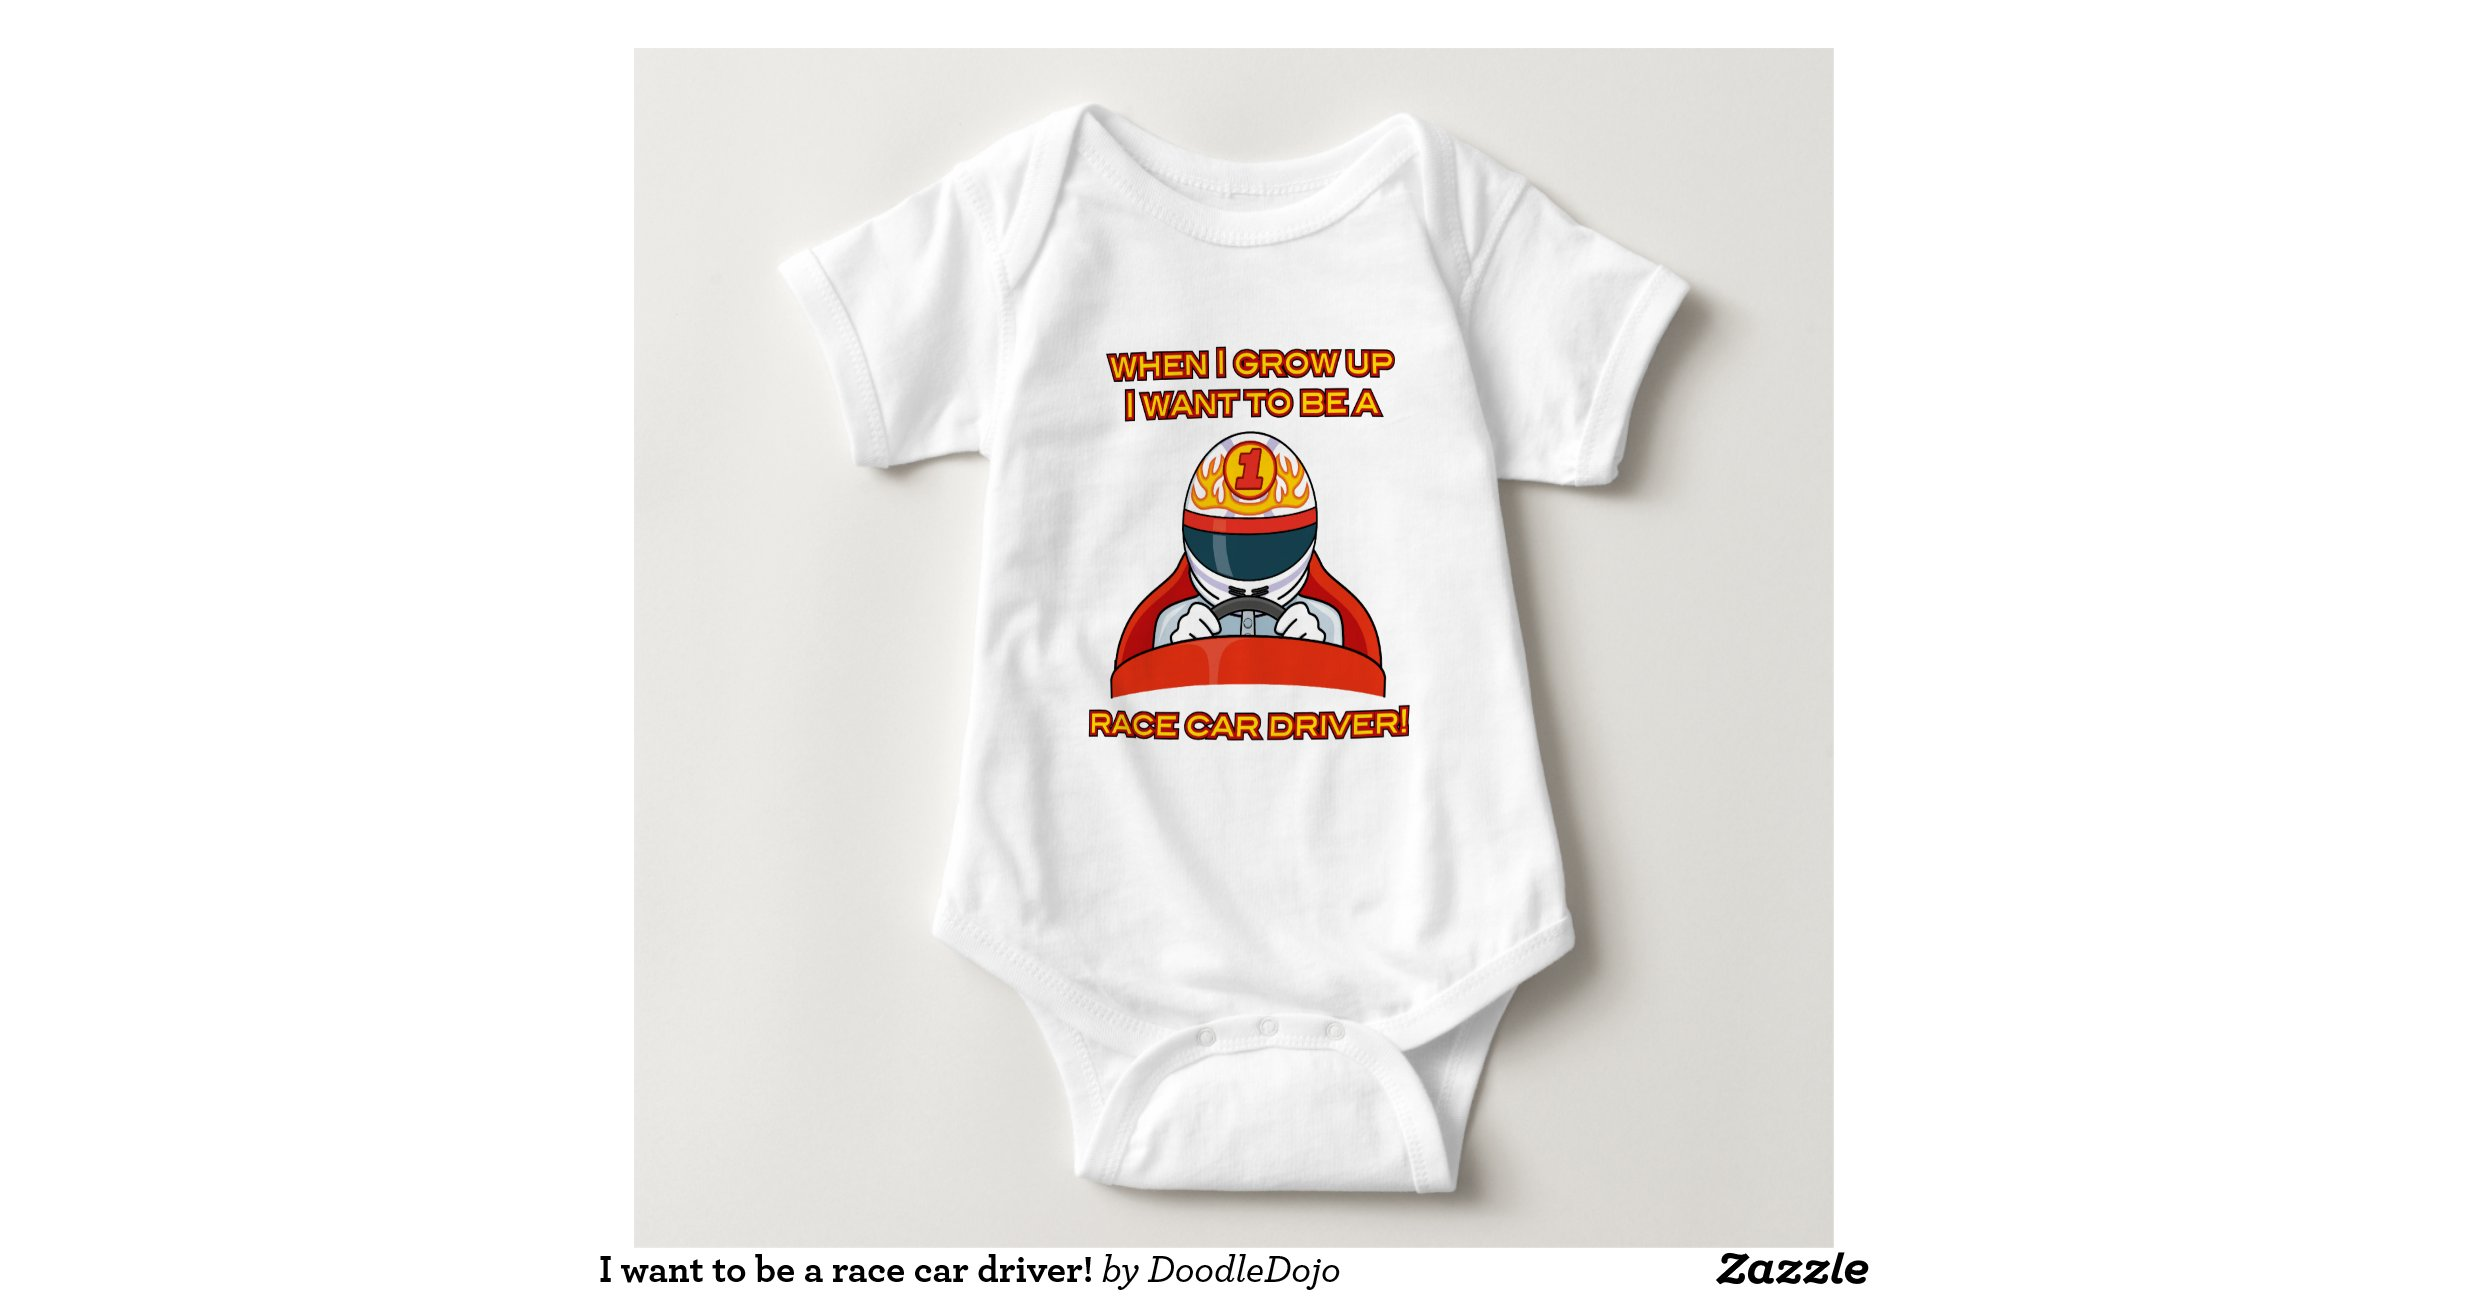 I want to be a race car driver tshirts zazzle for Race car driver t shirts